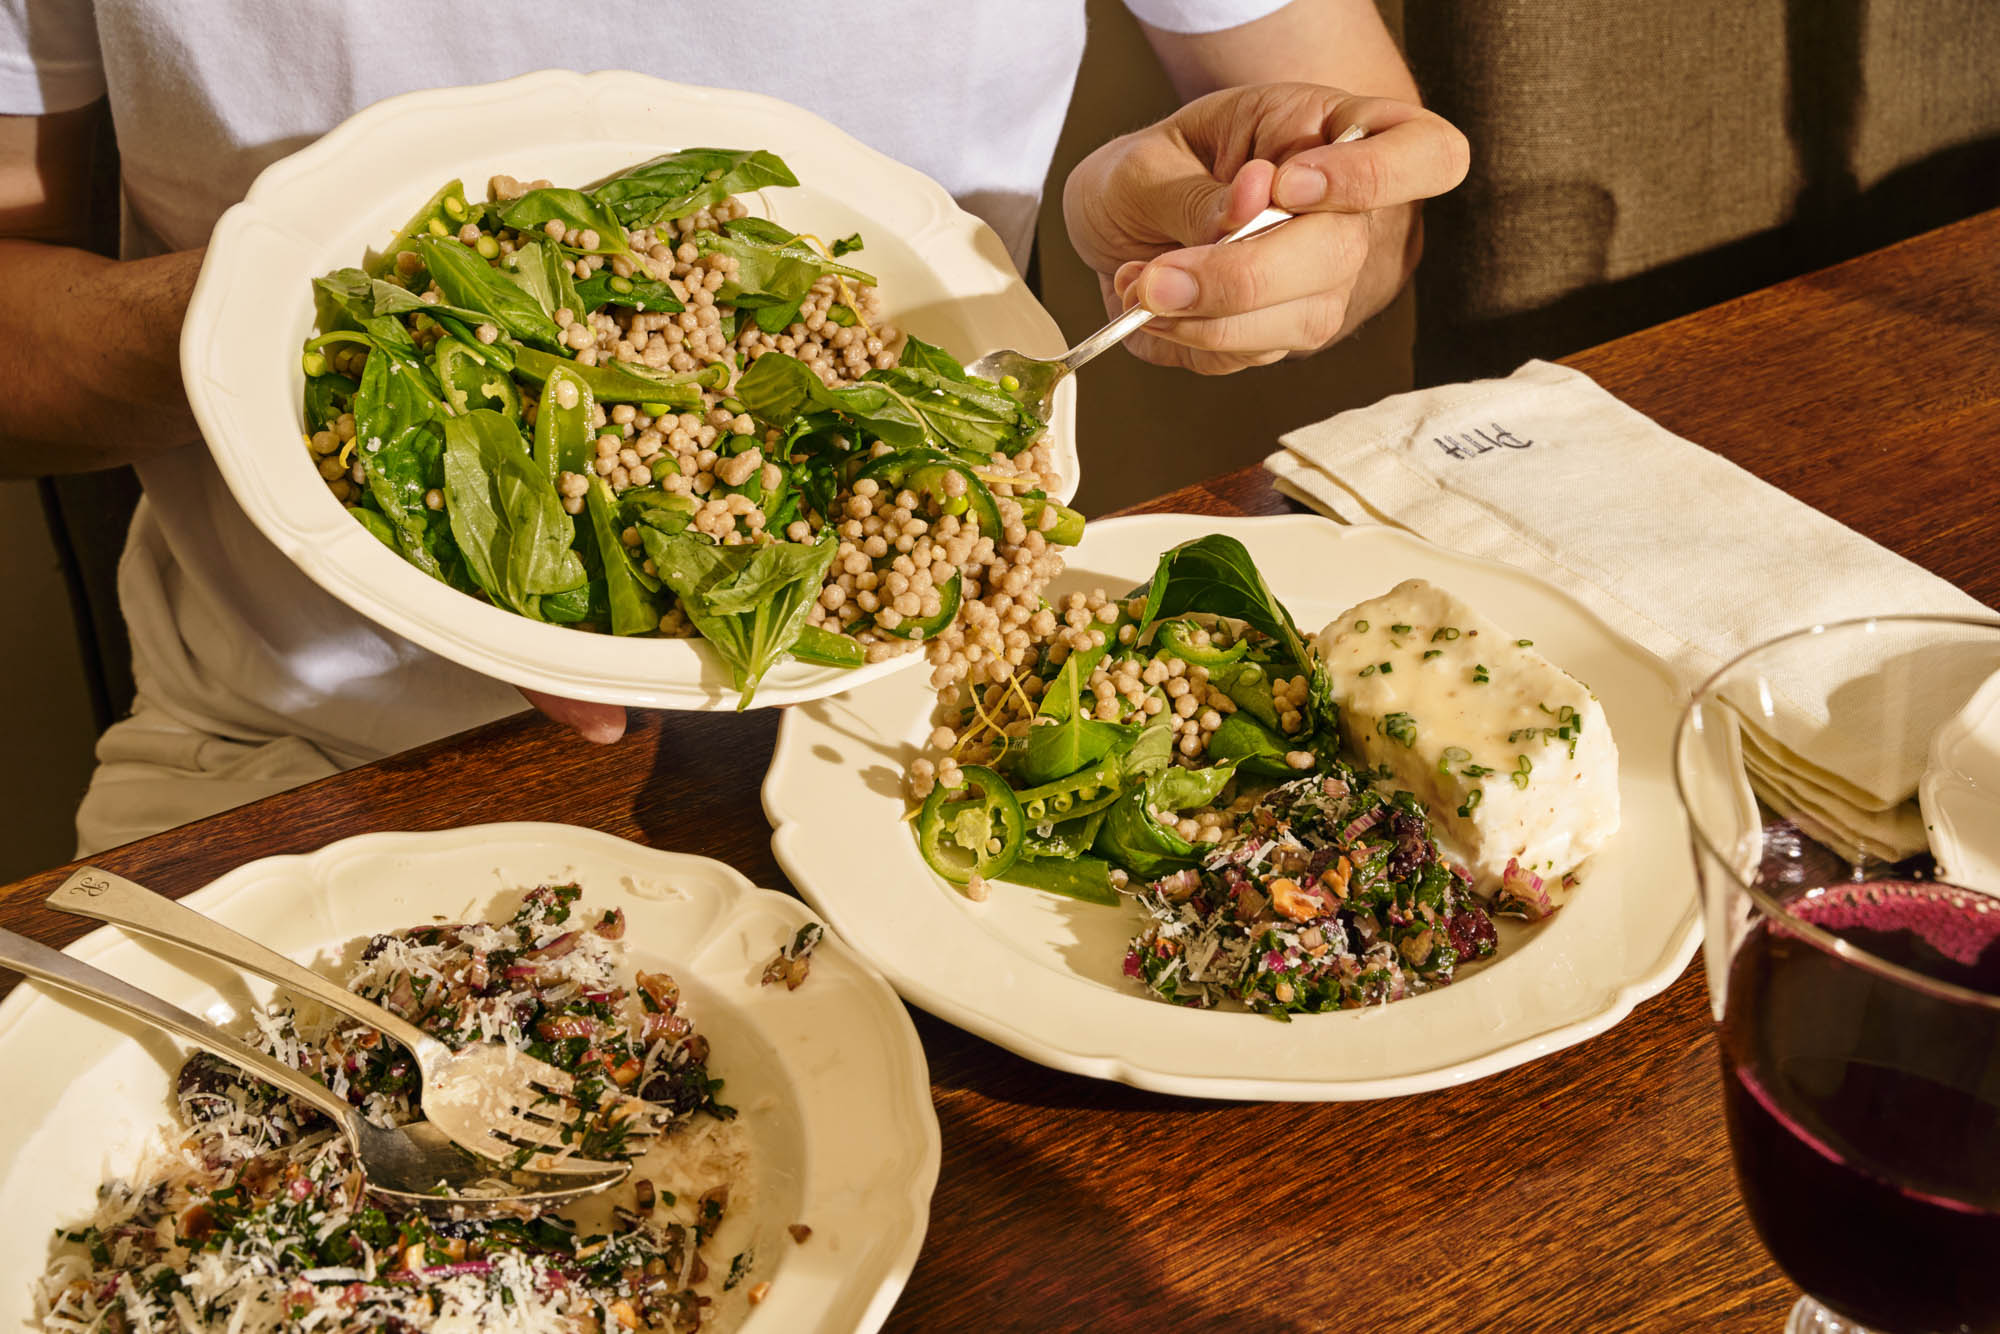 serving grain salad onto a plate with chard salad and poached halibut